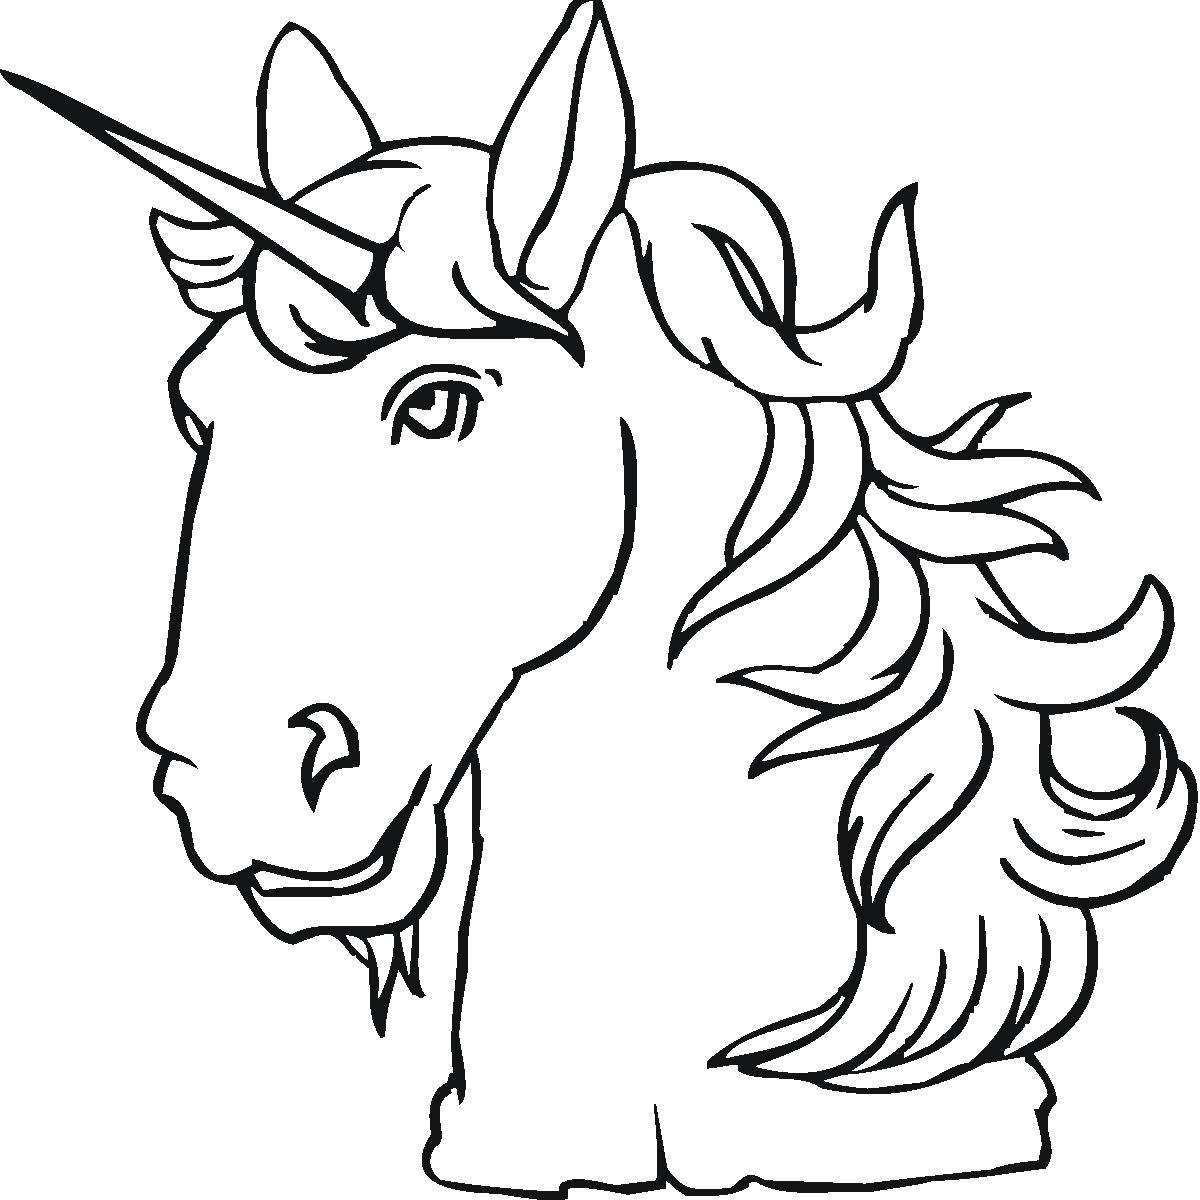 Unicorn coloring page - Winged Unicorn Coloring Pages Clipart Best